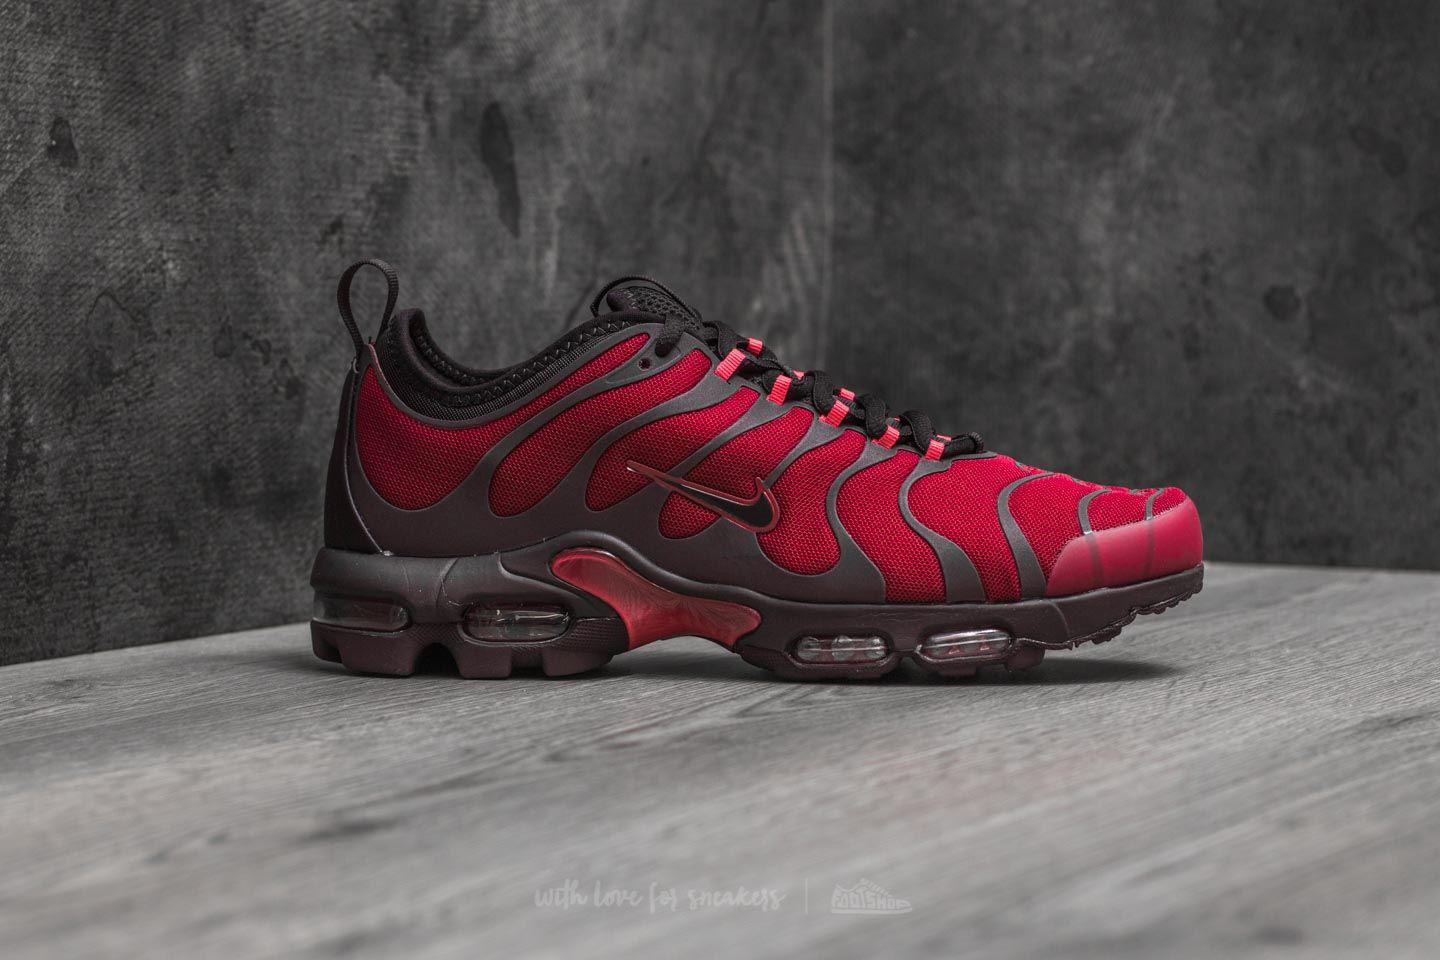 8dc12891a3 Nike Air Max Plus Tn Ultra Noble Red/ Port Wine for Men - Lyst